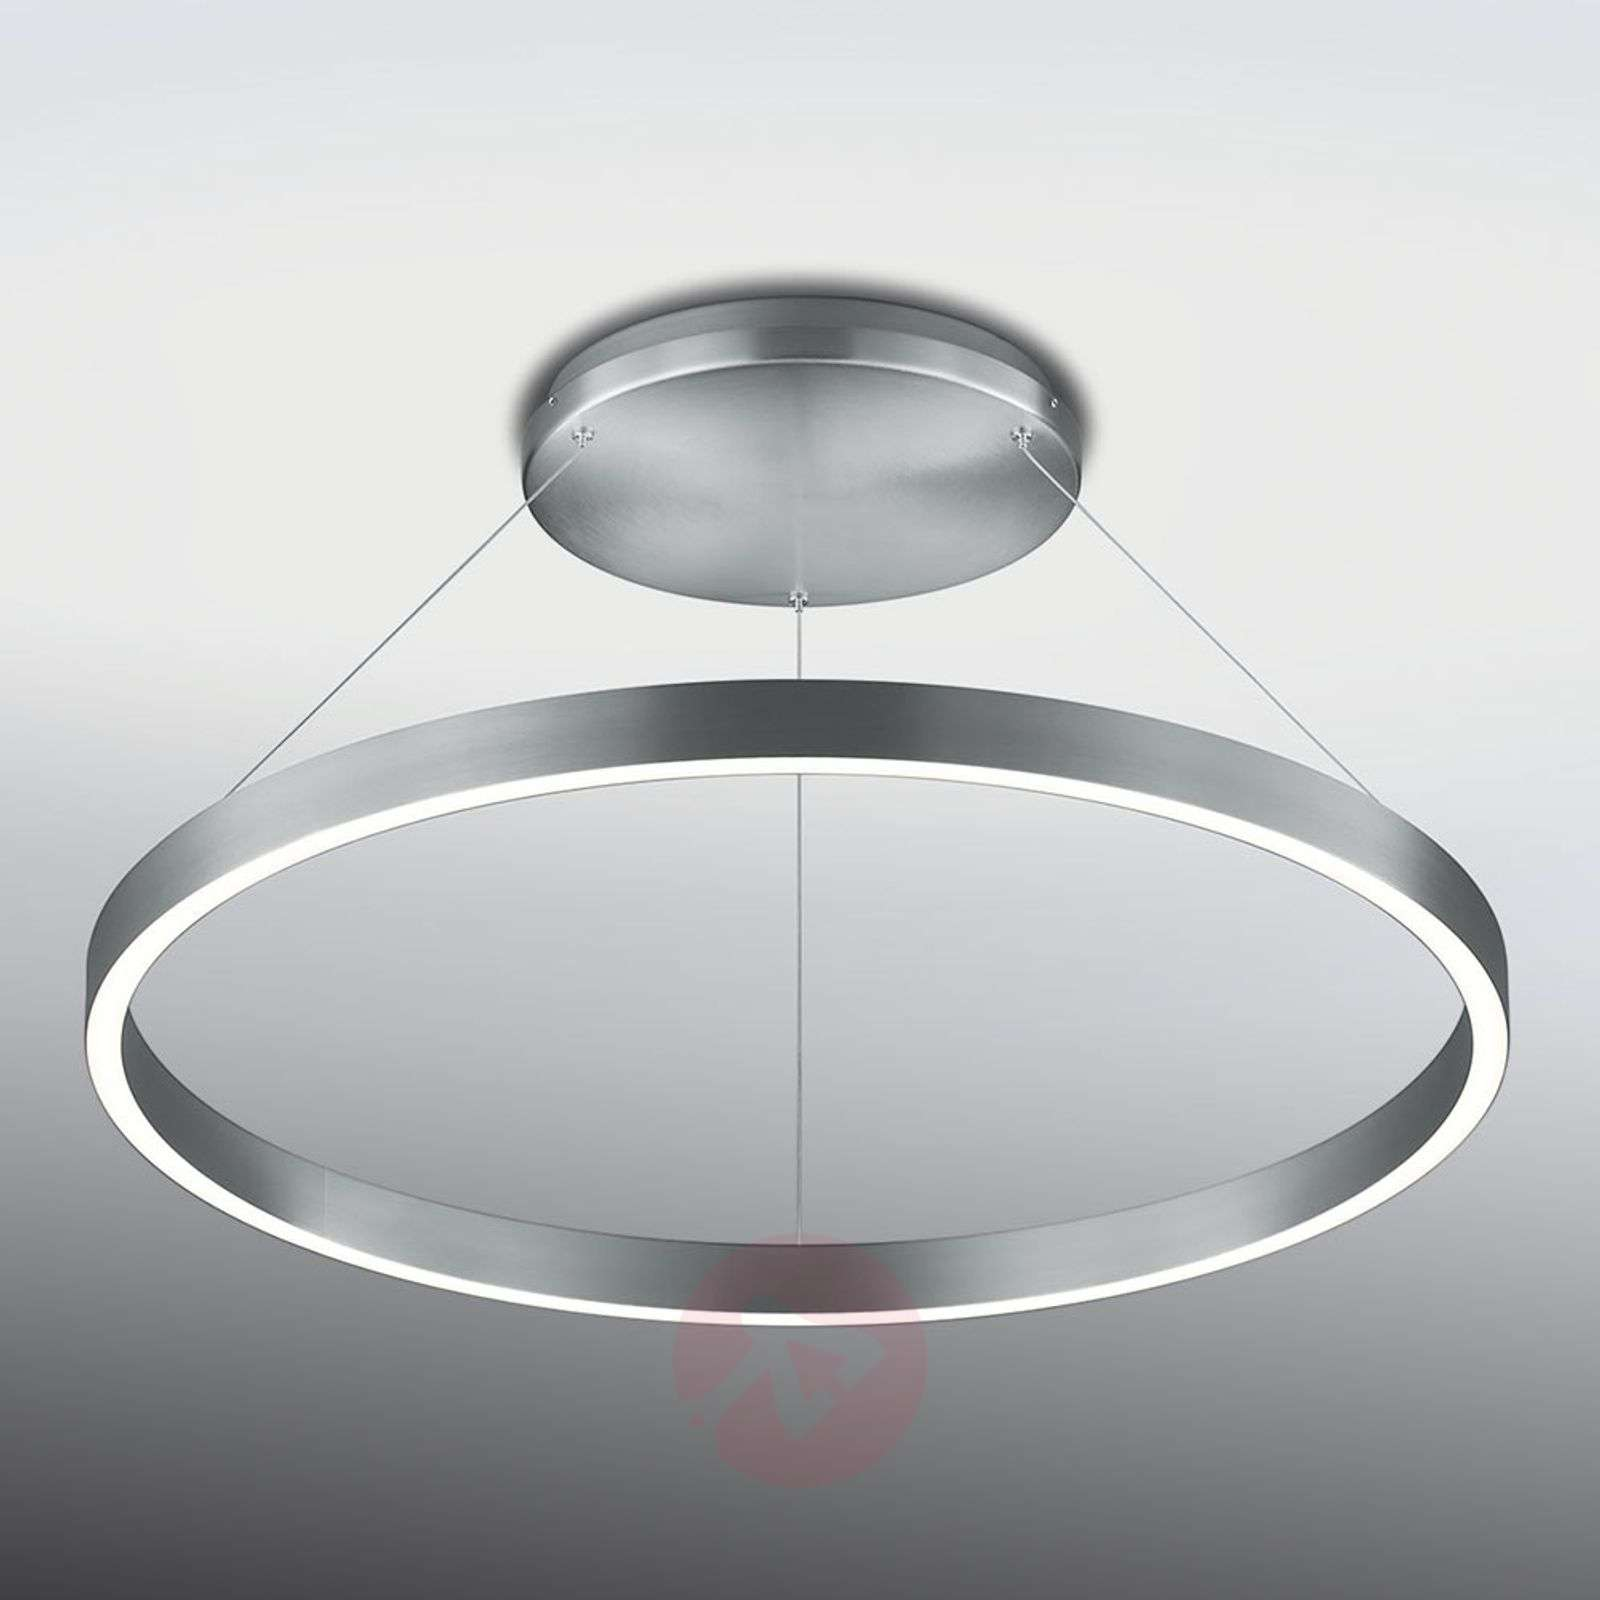 Ring Shaped Led Ceiling Light Circle Dimmable 4002682 01